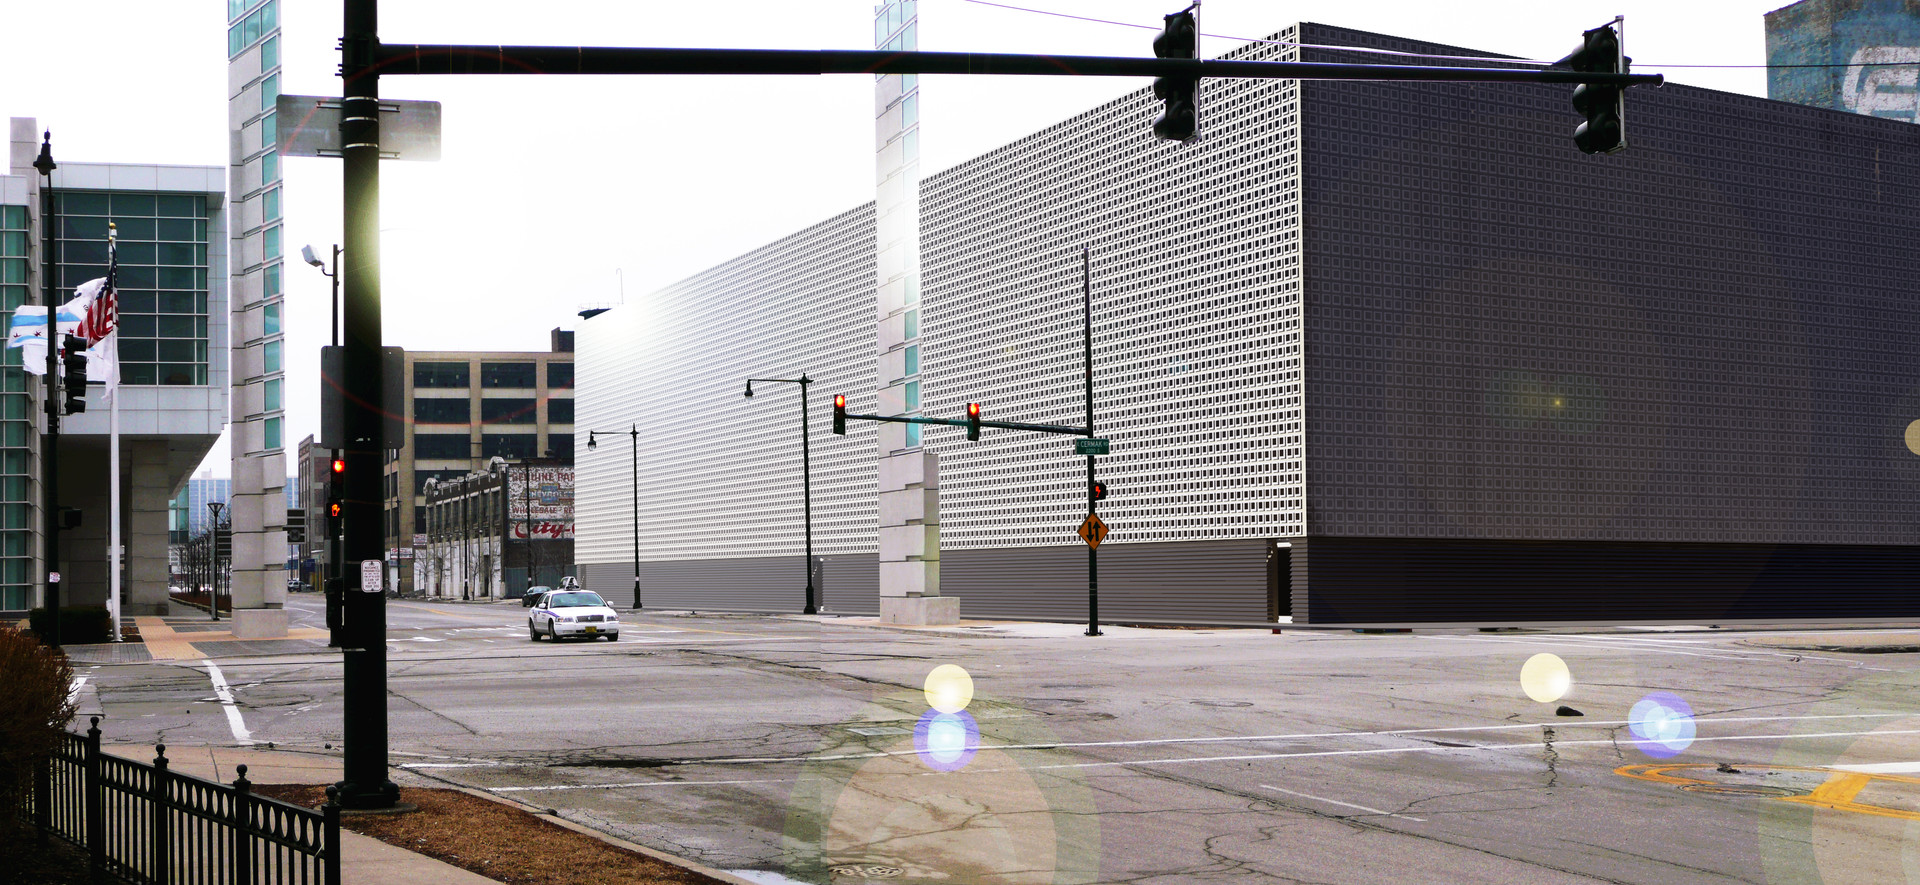 South Indiana Avenue Data Centre, Chicago